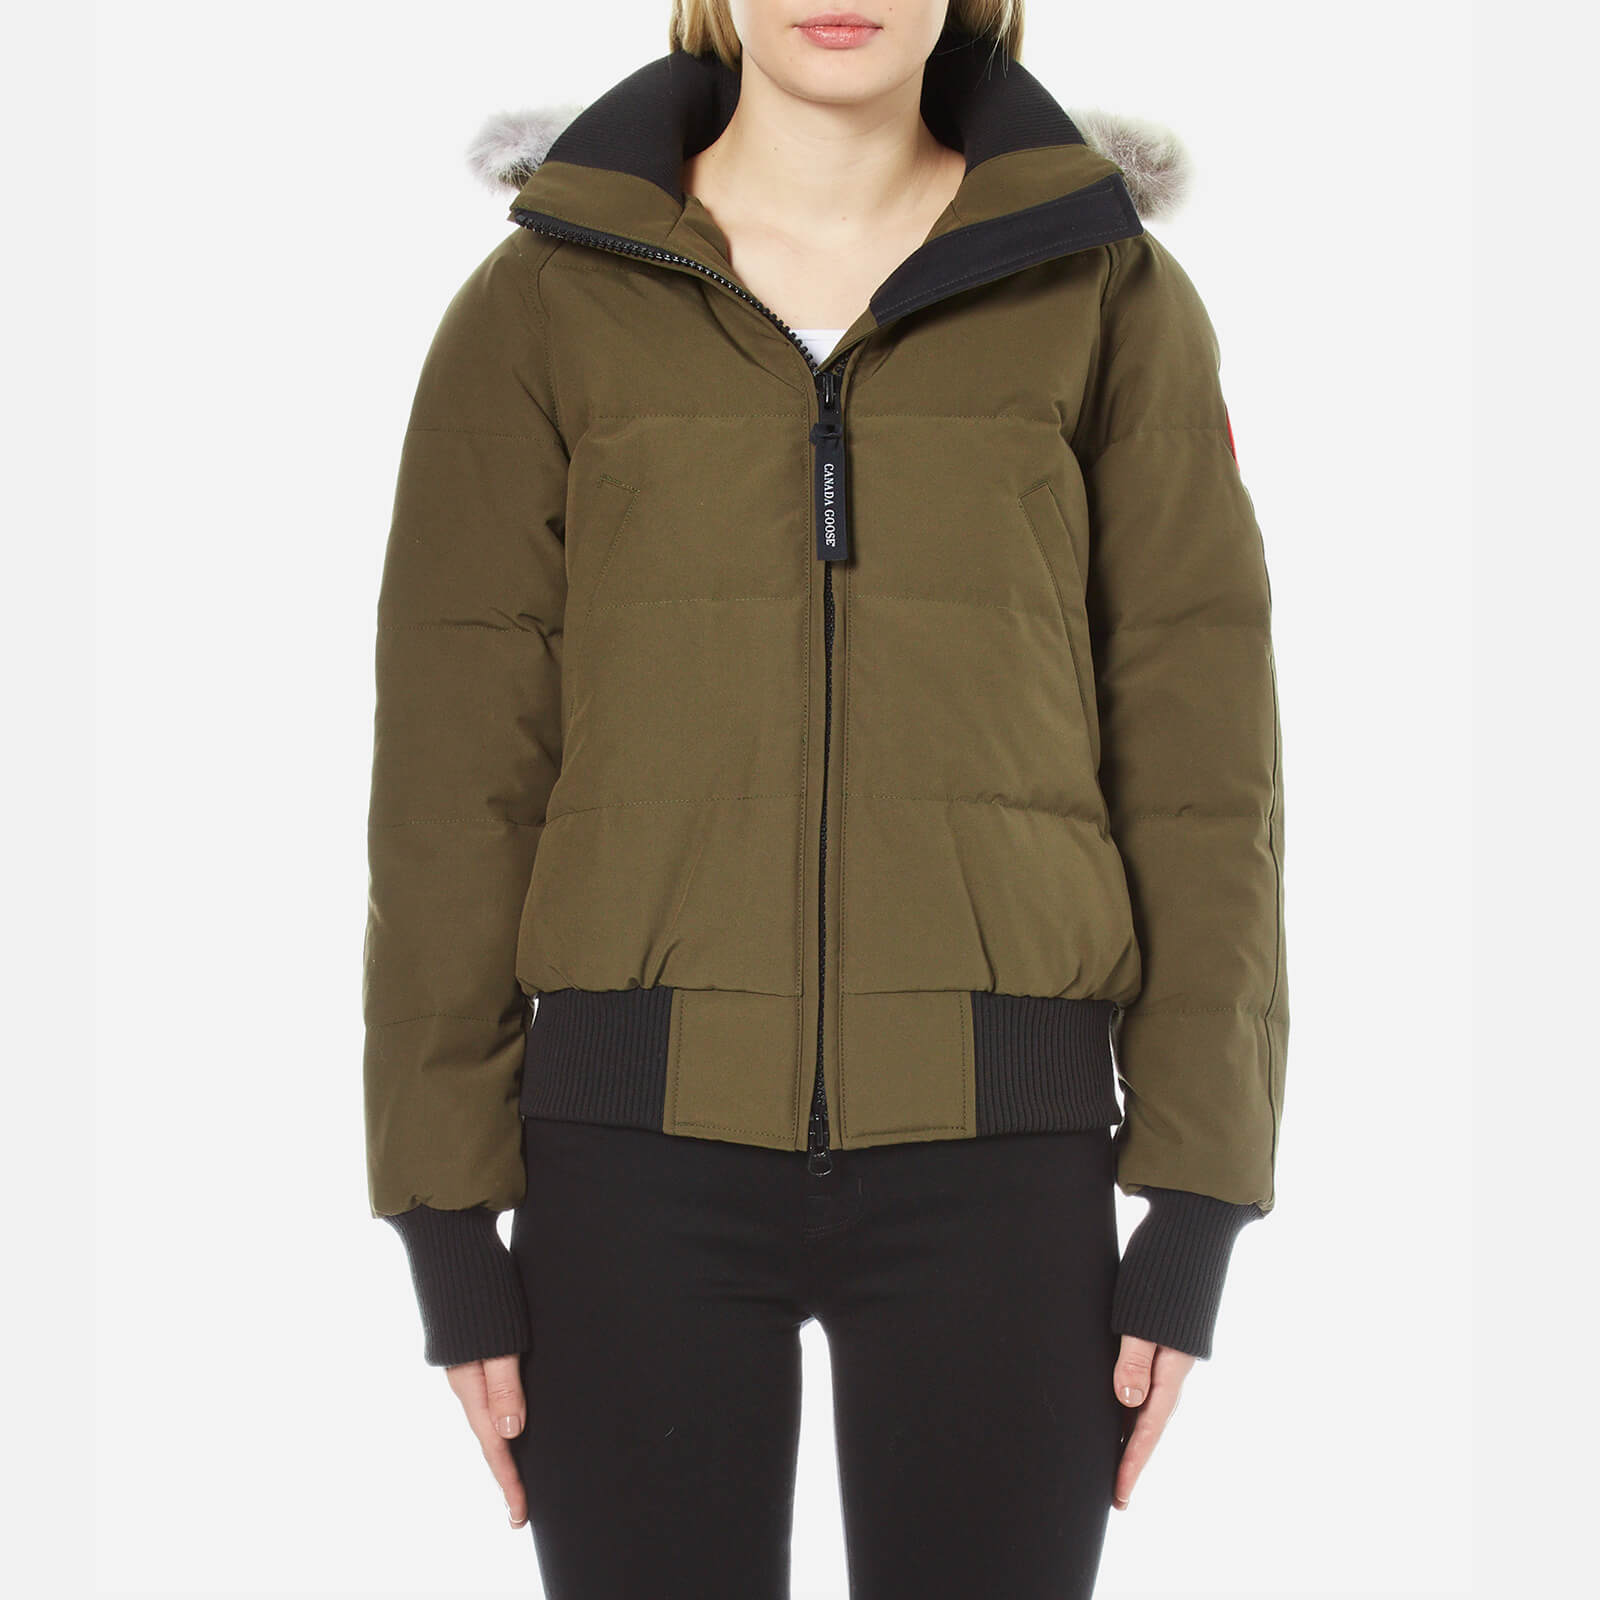 3d909c89203d Canada Goose Women s Savona Bomber Jacket - Military - Free UK Delivery  over £50